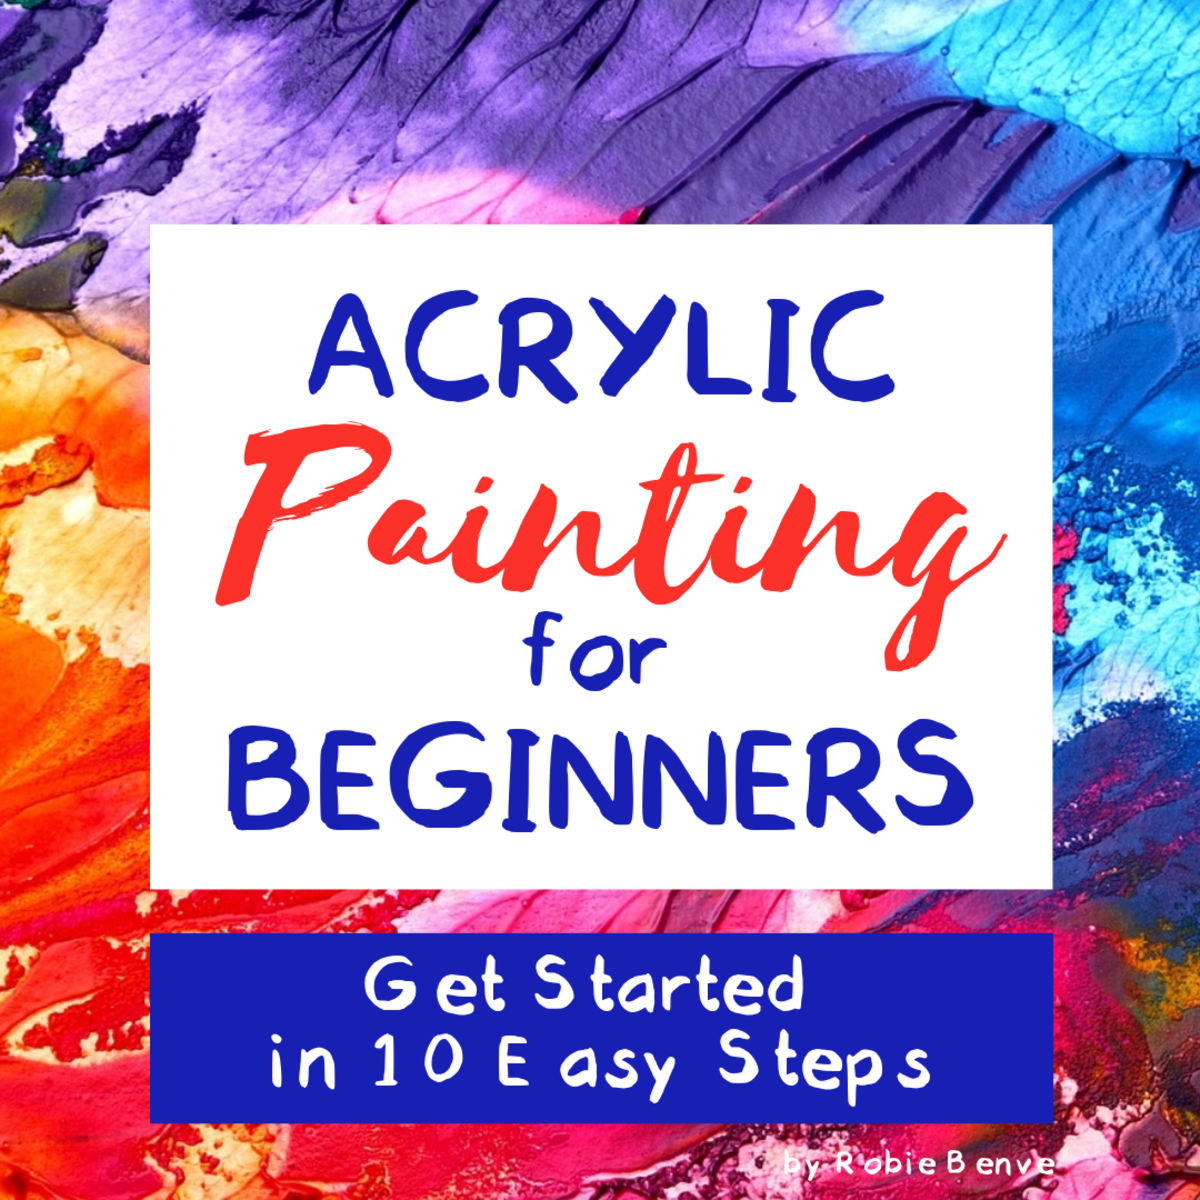 Acrylic Painting For Beginners Getting Started In 10 Easy Steps Feltmagnet Crafts